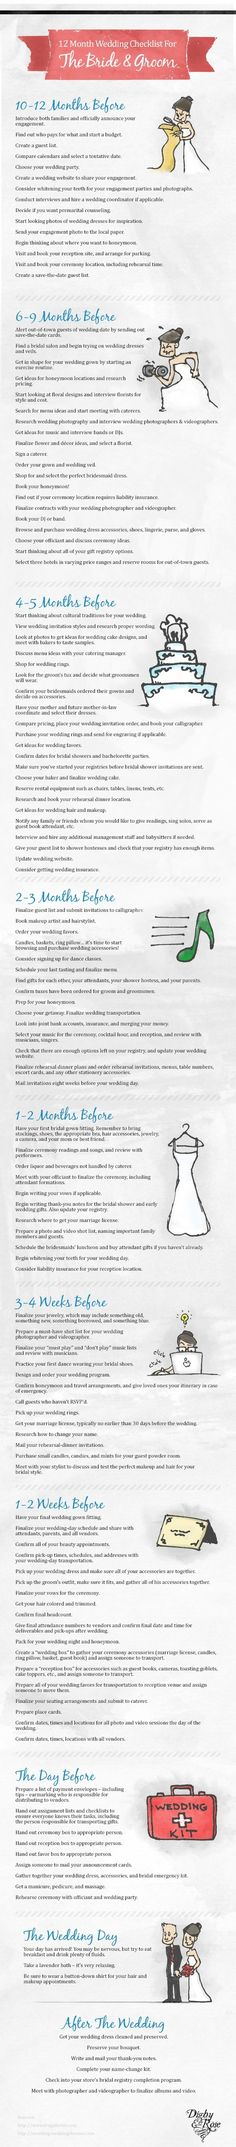 A 12 Month Wedding Checklist for the Bride & Groom